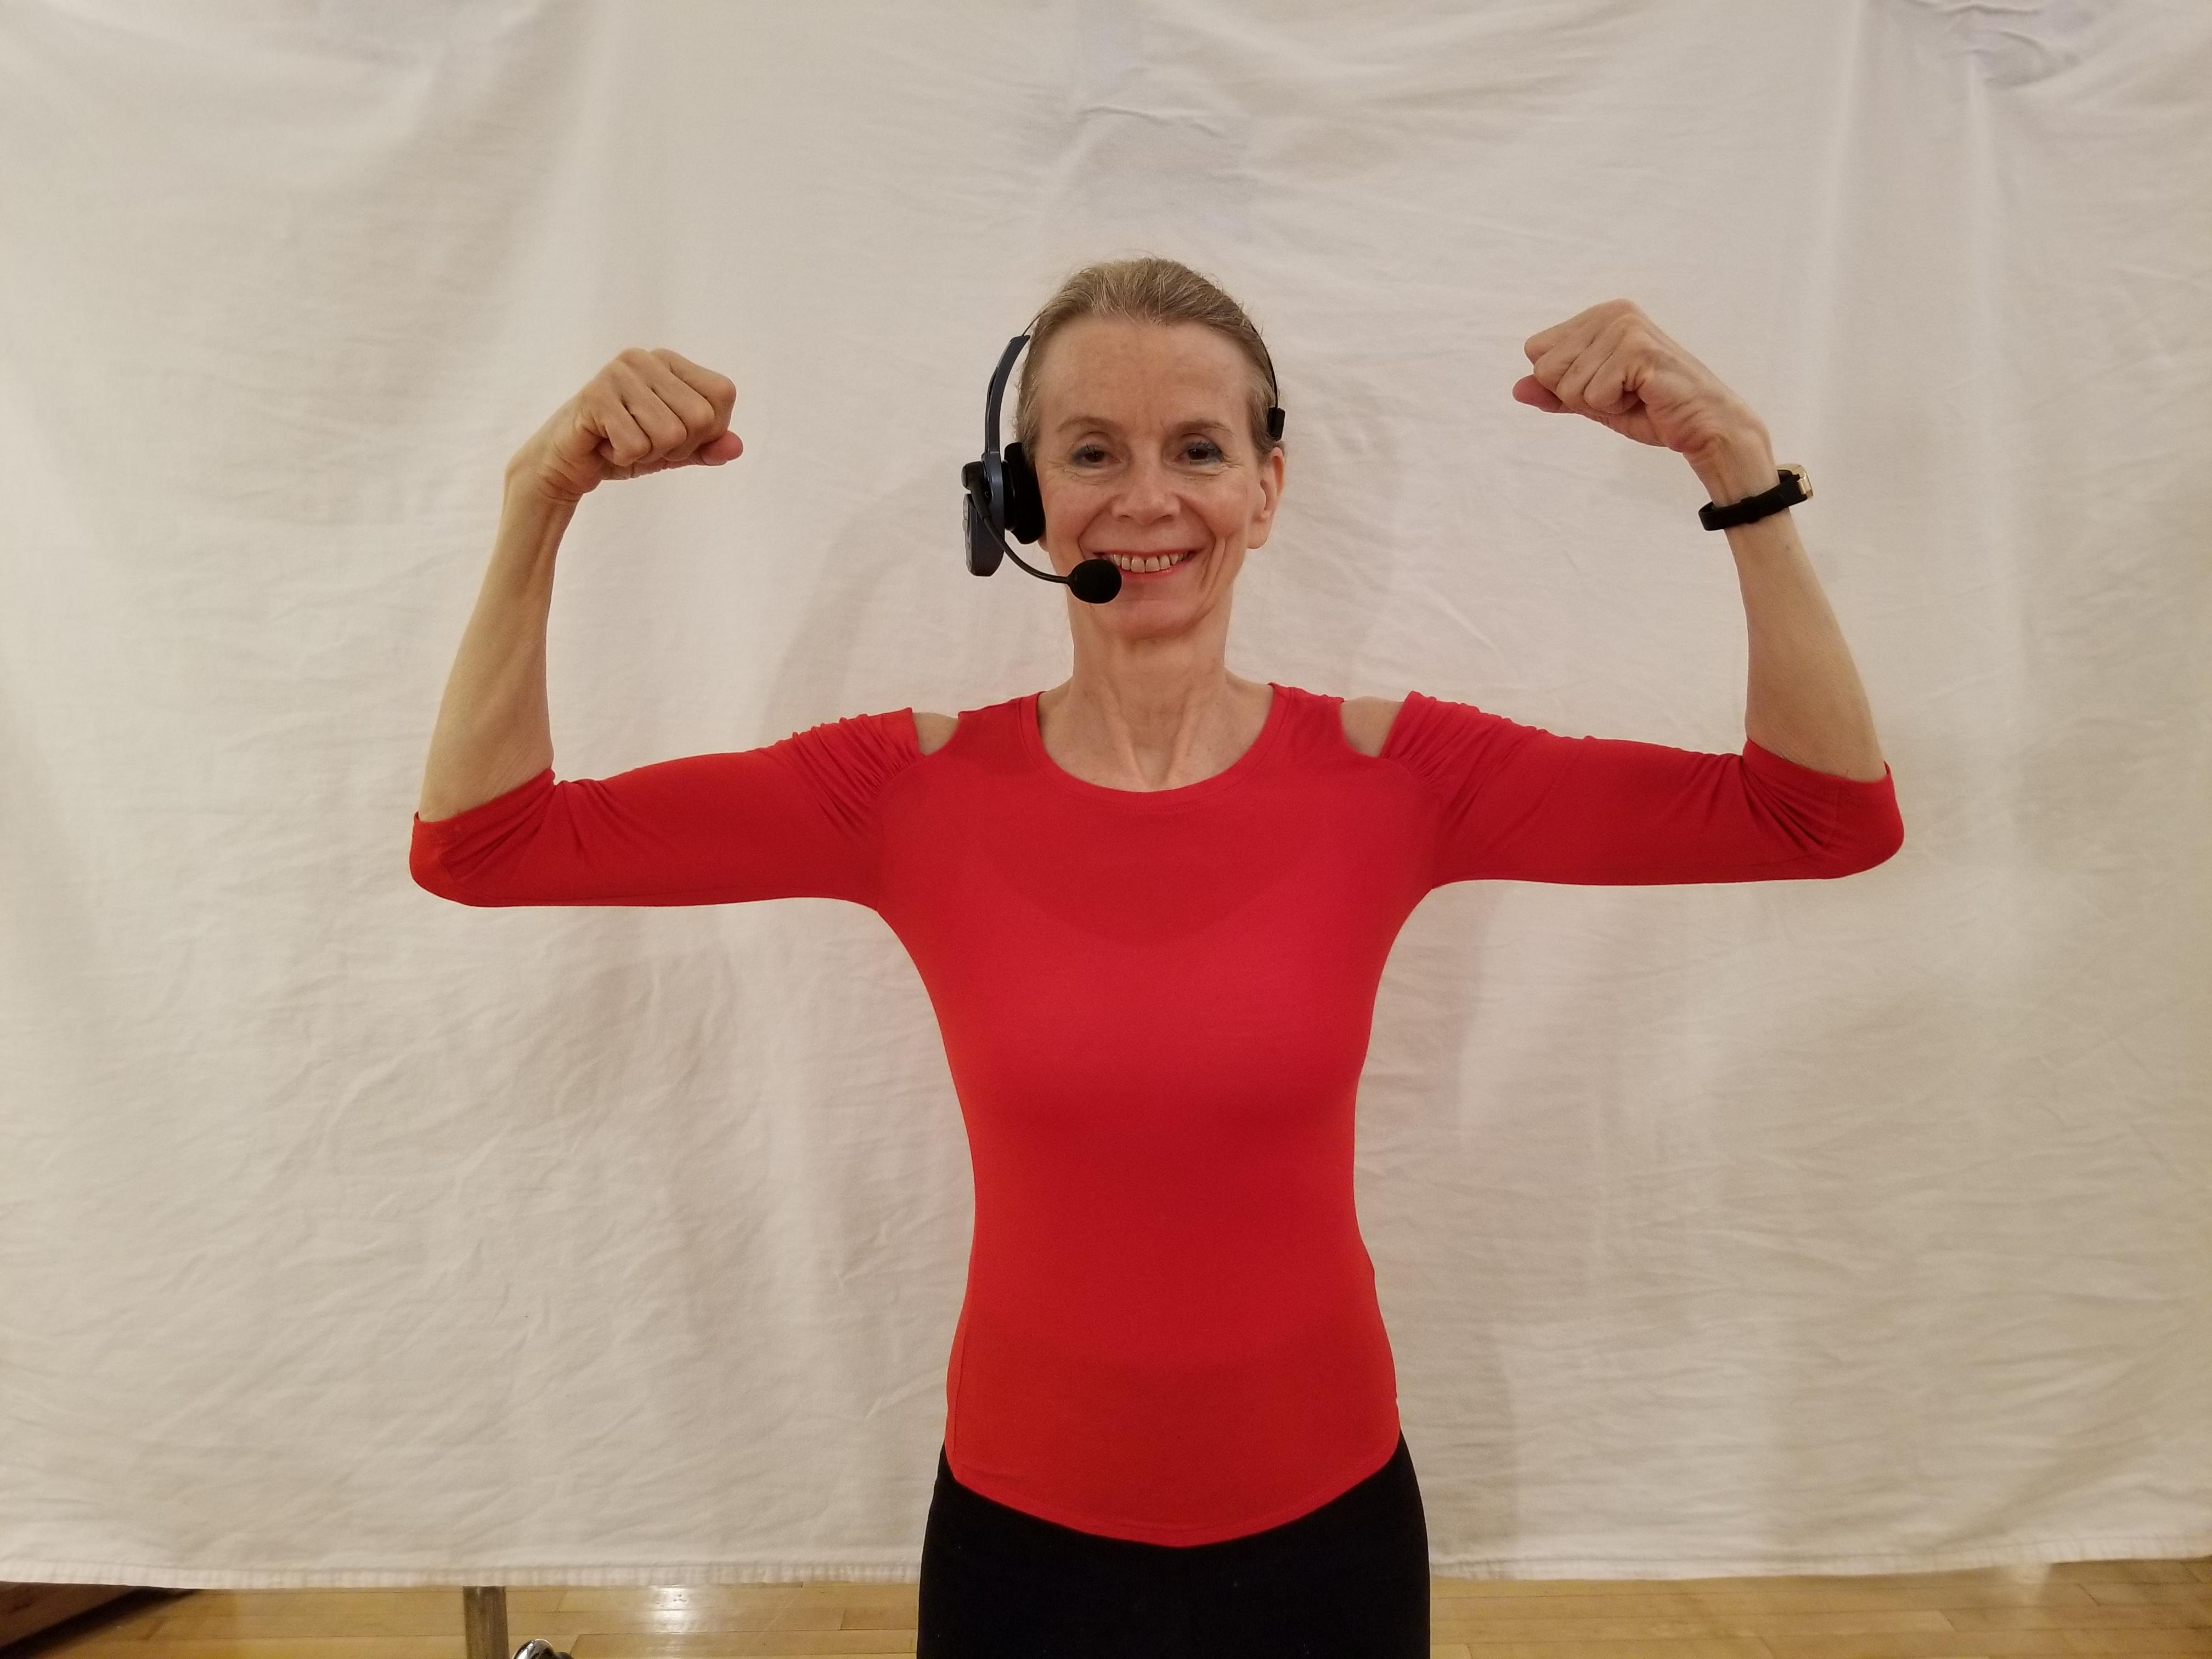 Online Exercise Class Mon, Wed, Friday 10-11am: Cardio, HIIT, Light Weights (thru Zoom.us.com)